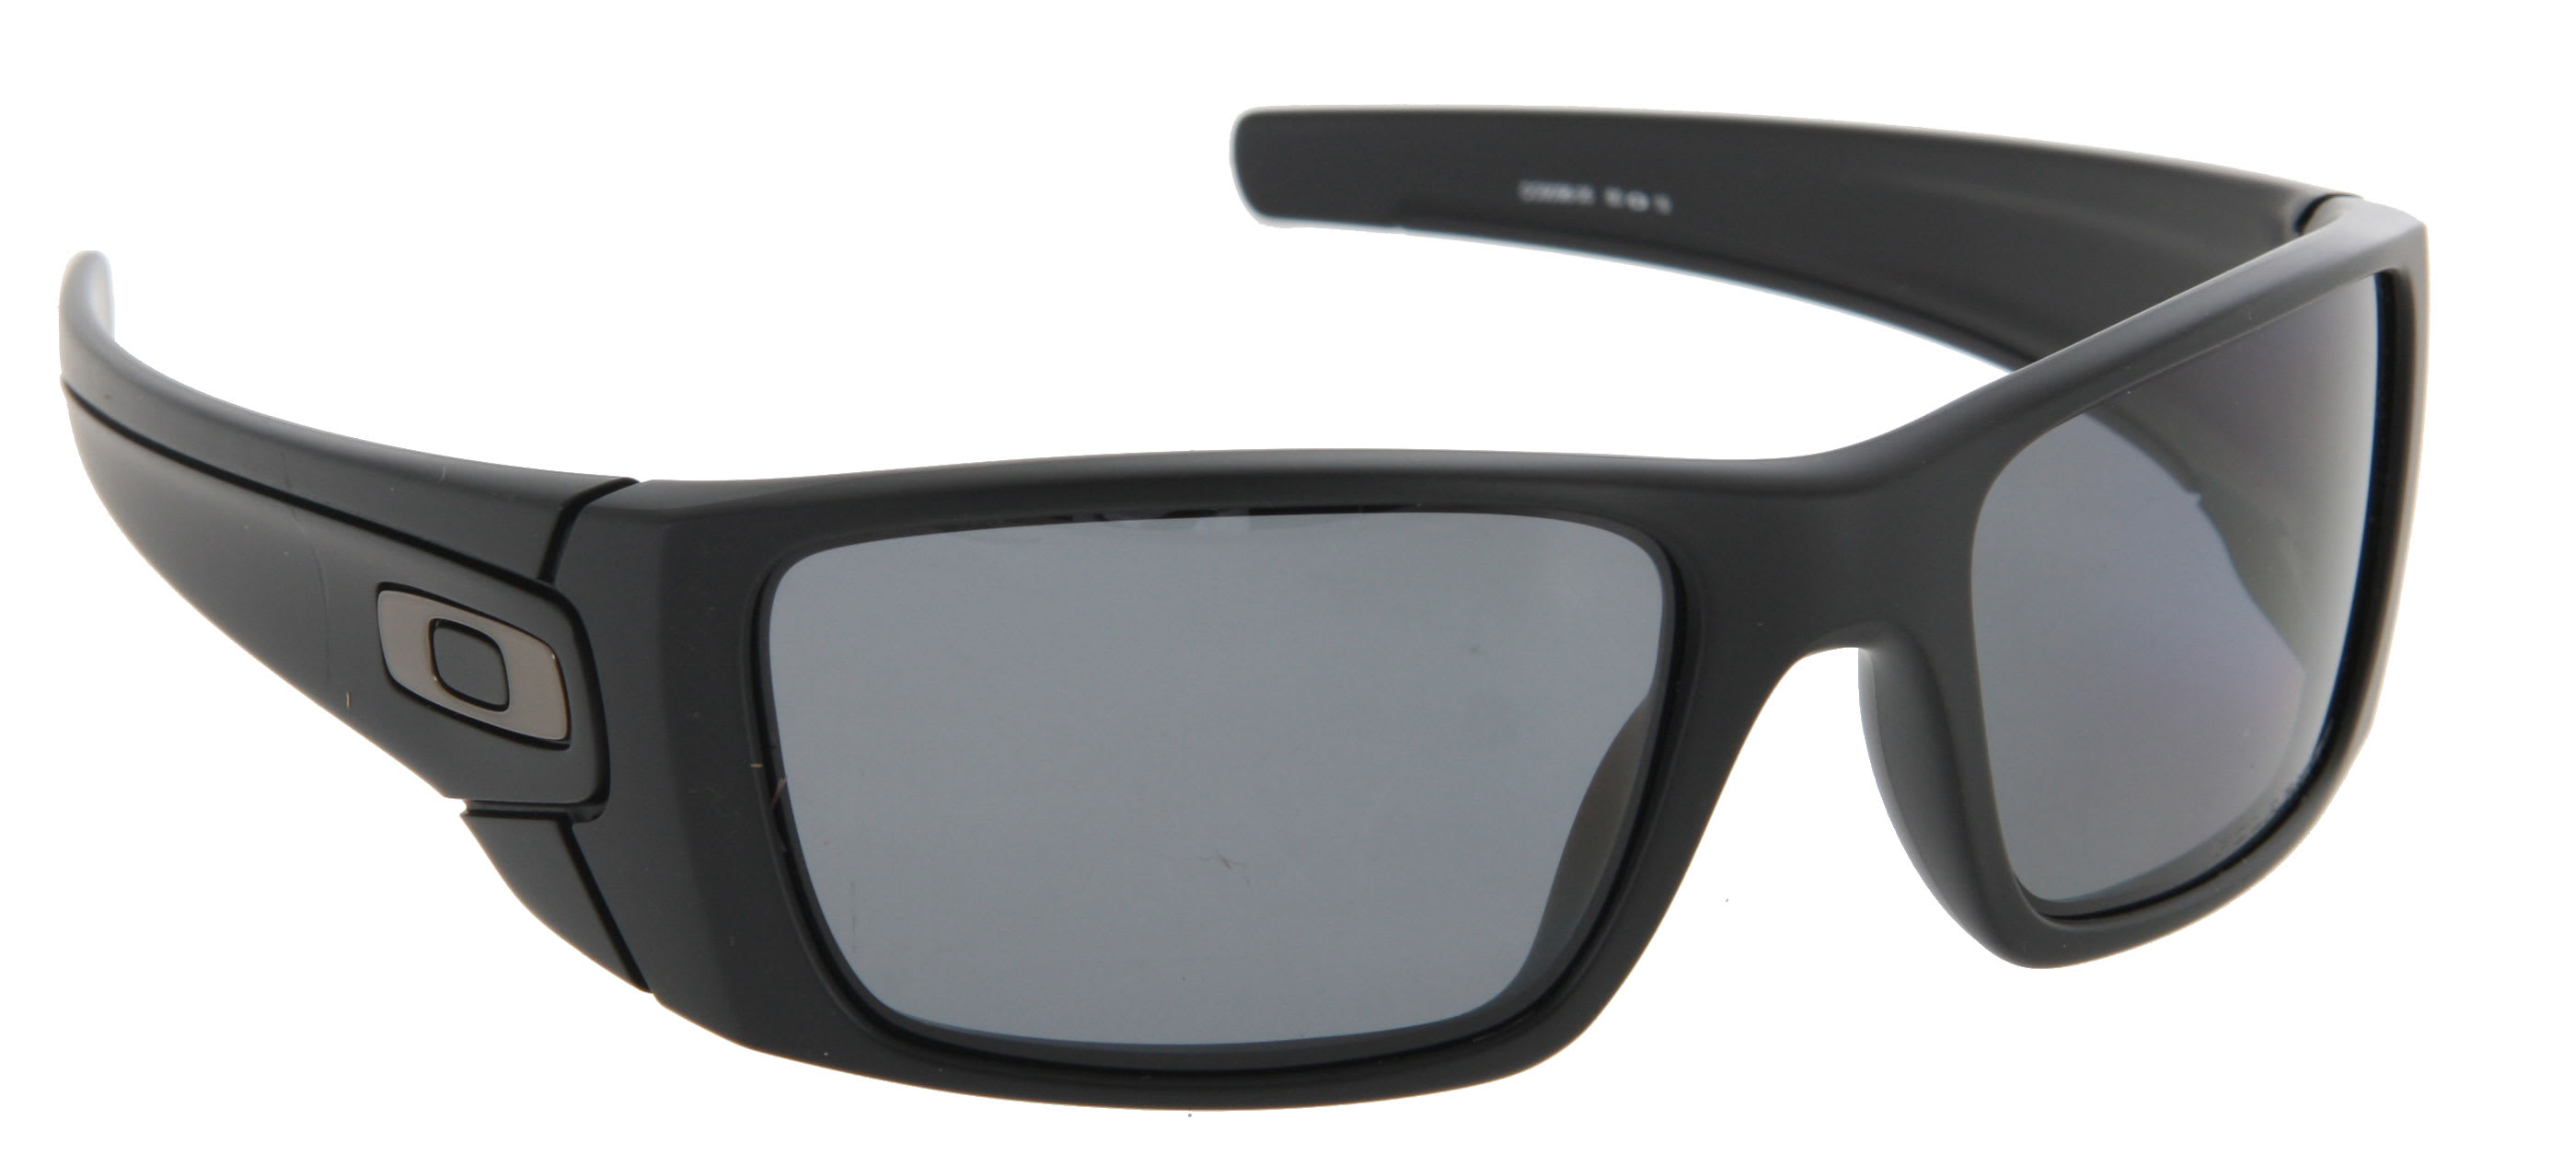 oakley fuel cell